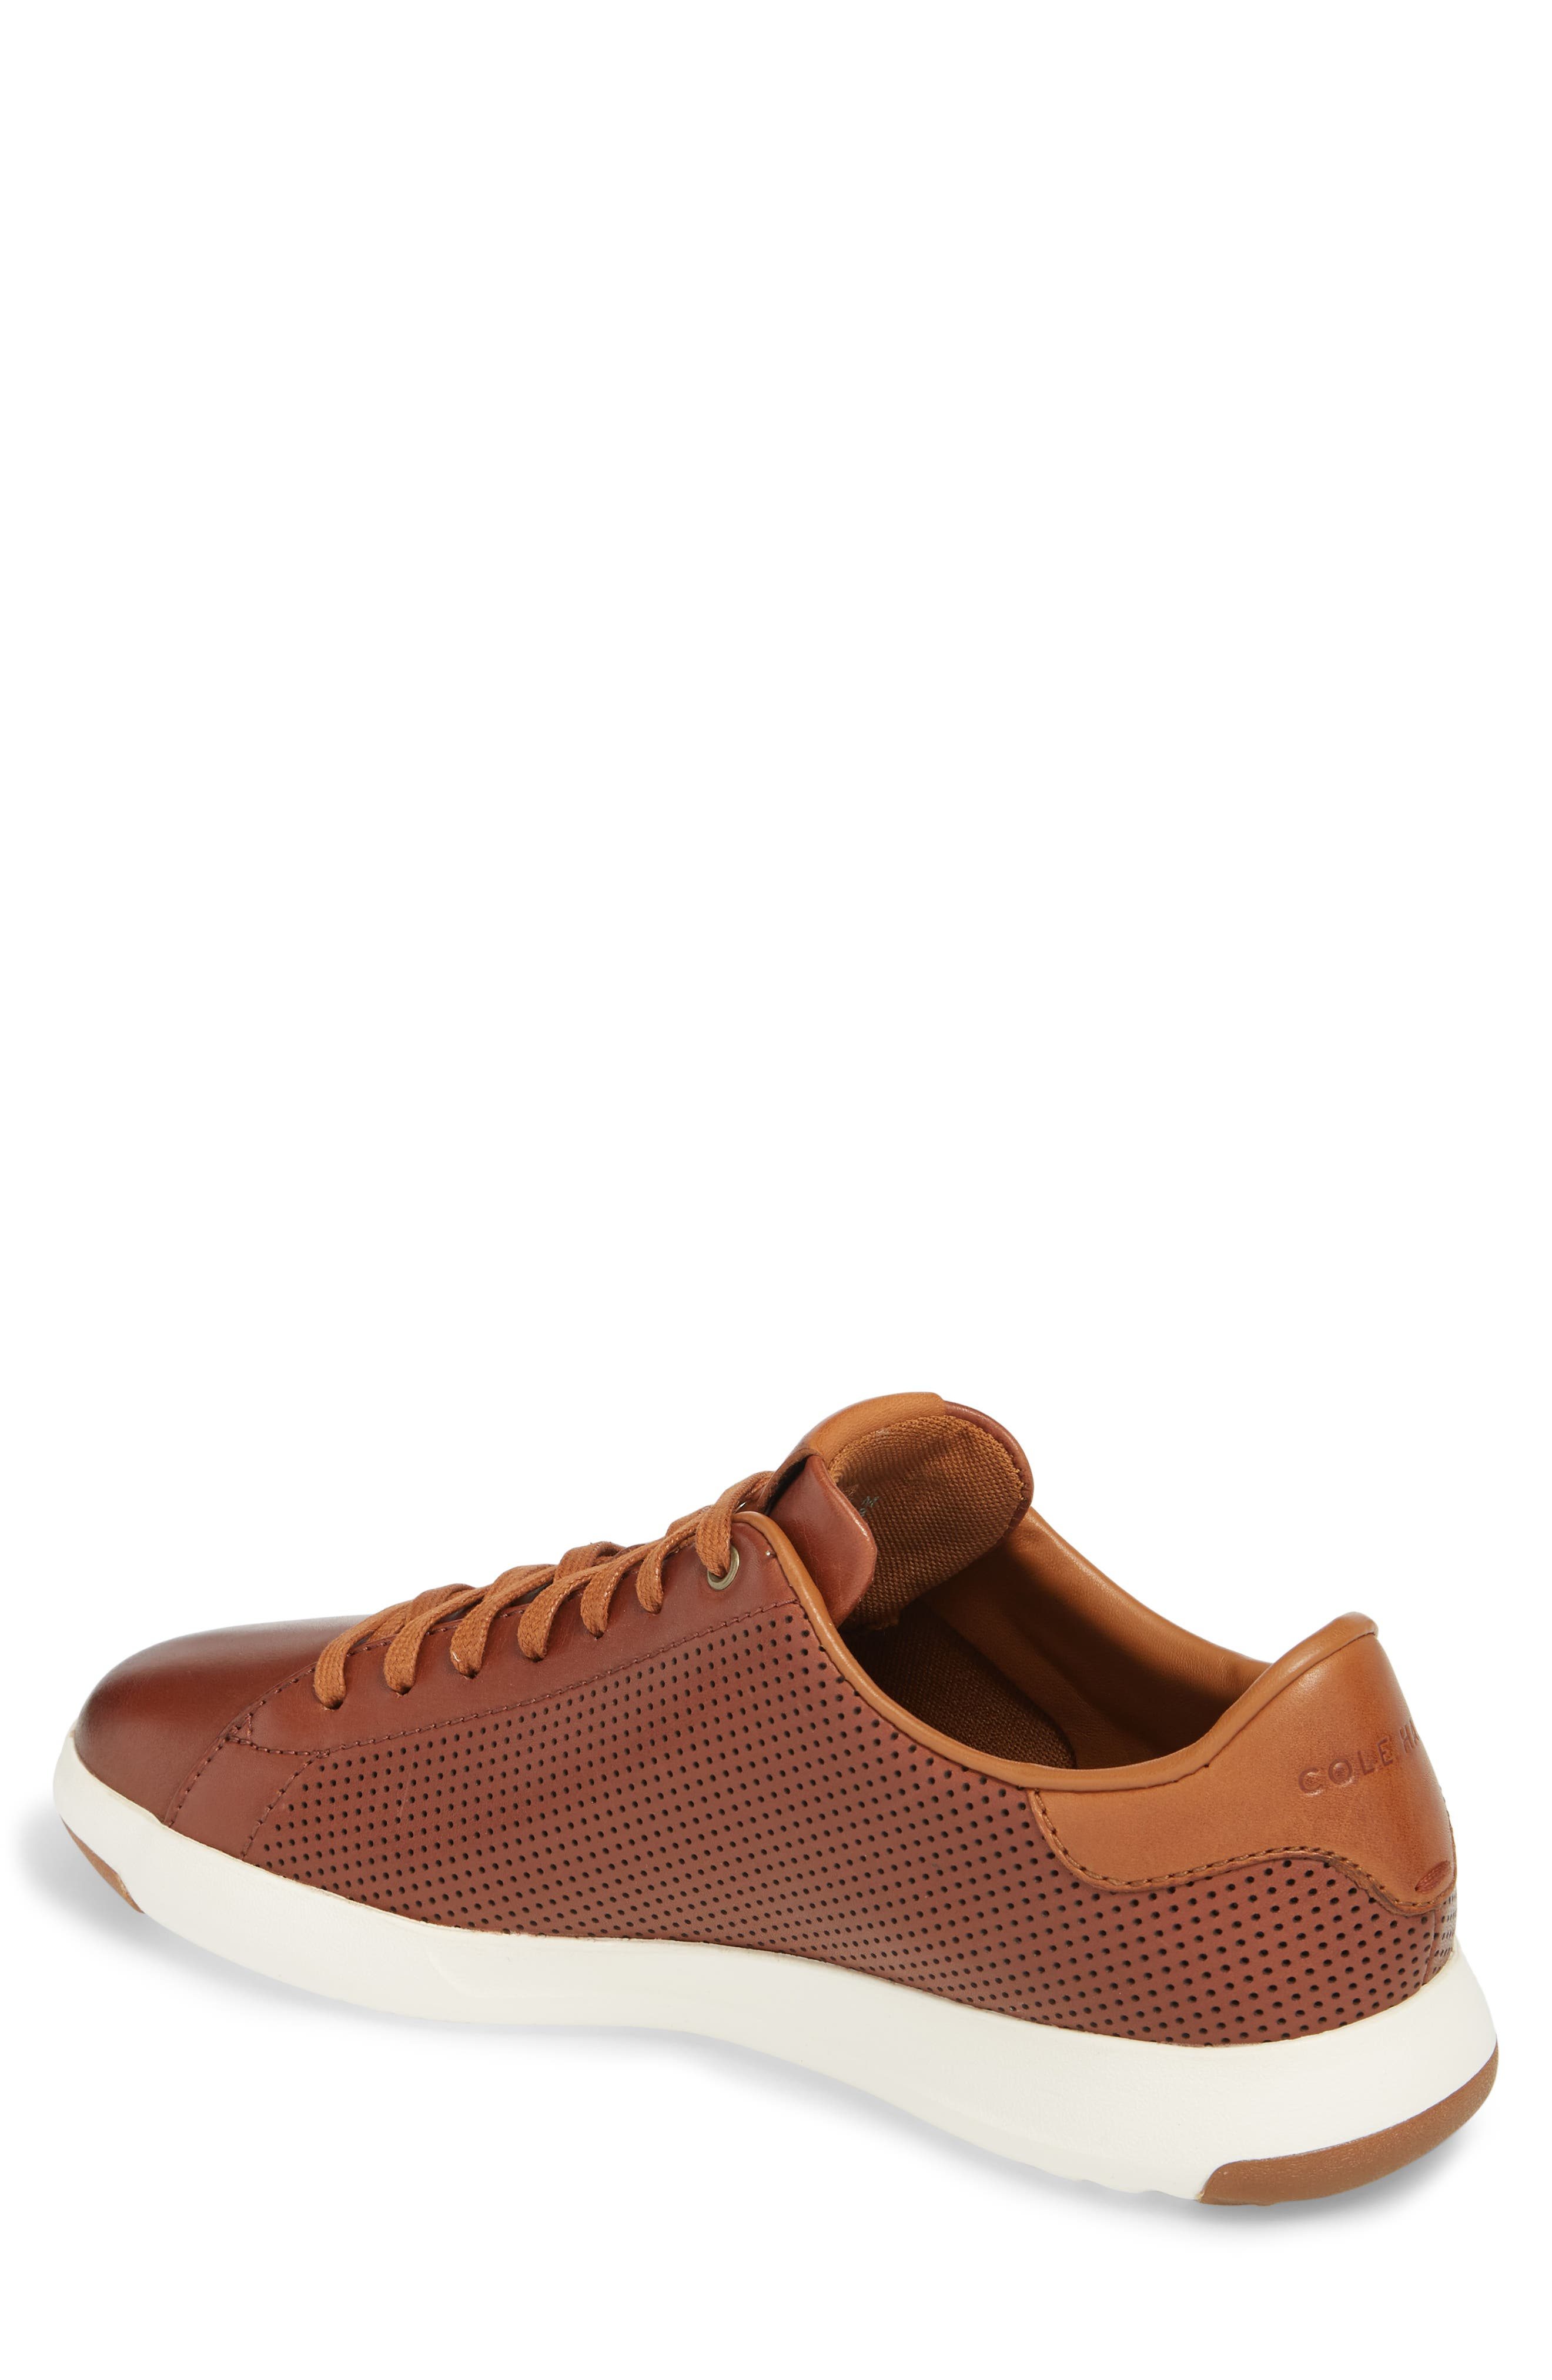 GrandPrø Perforated Low Top Sneaker,                             Alternate thumbnail 2, color,                             WOODBURY LEATHER